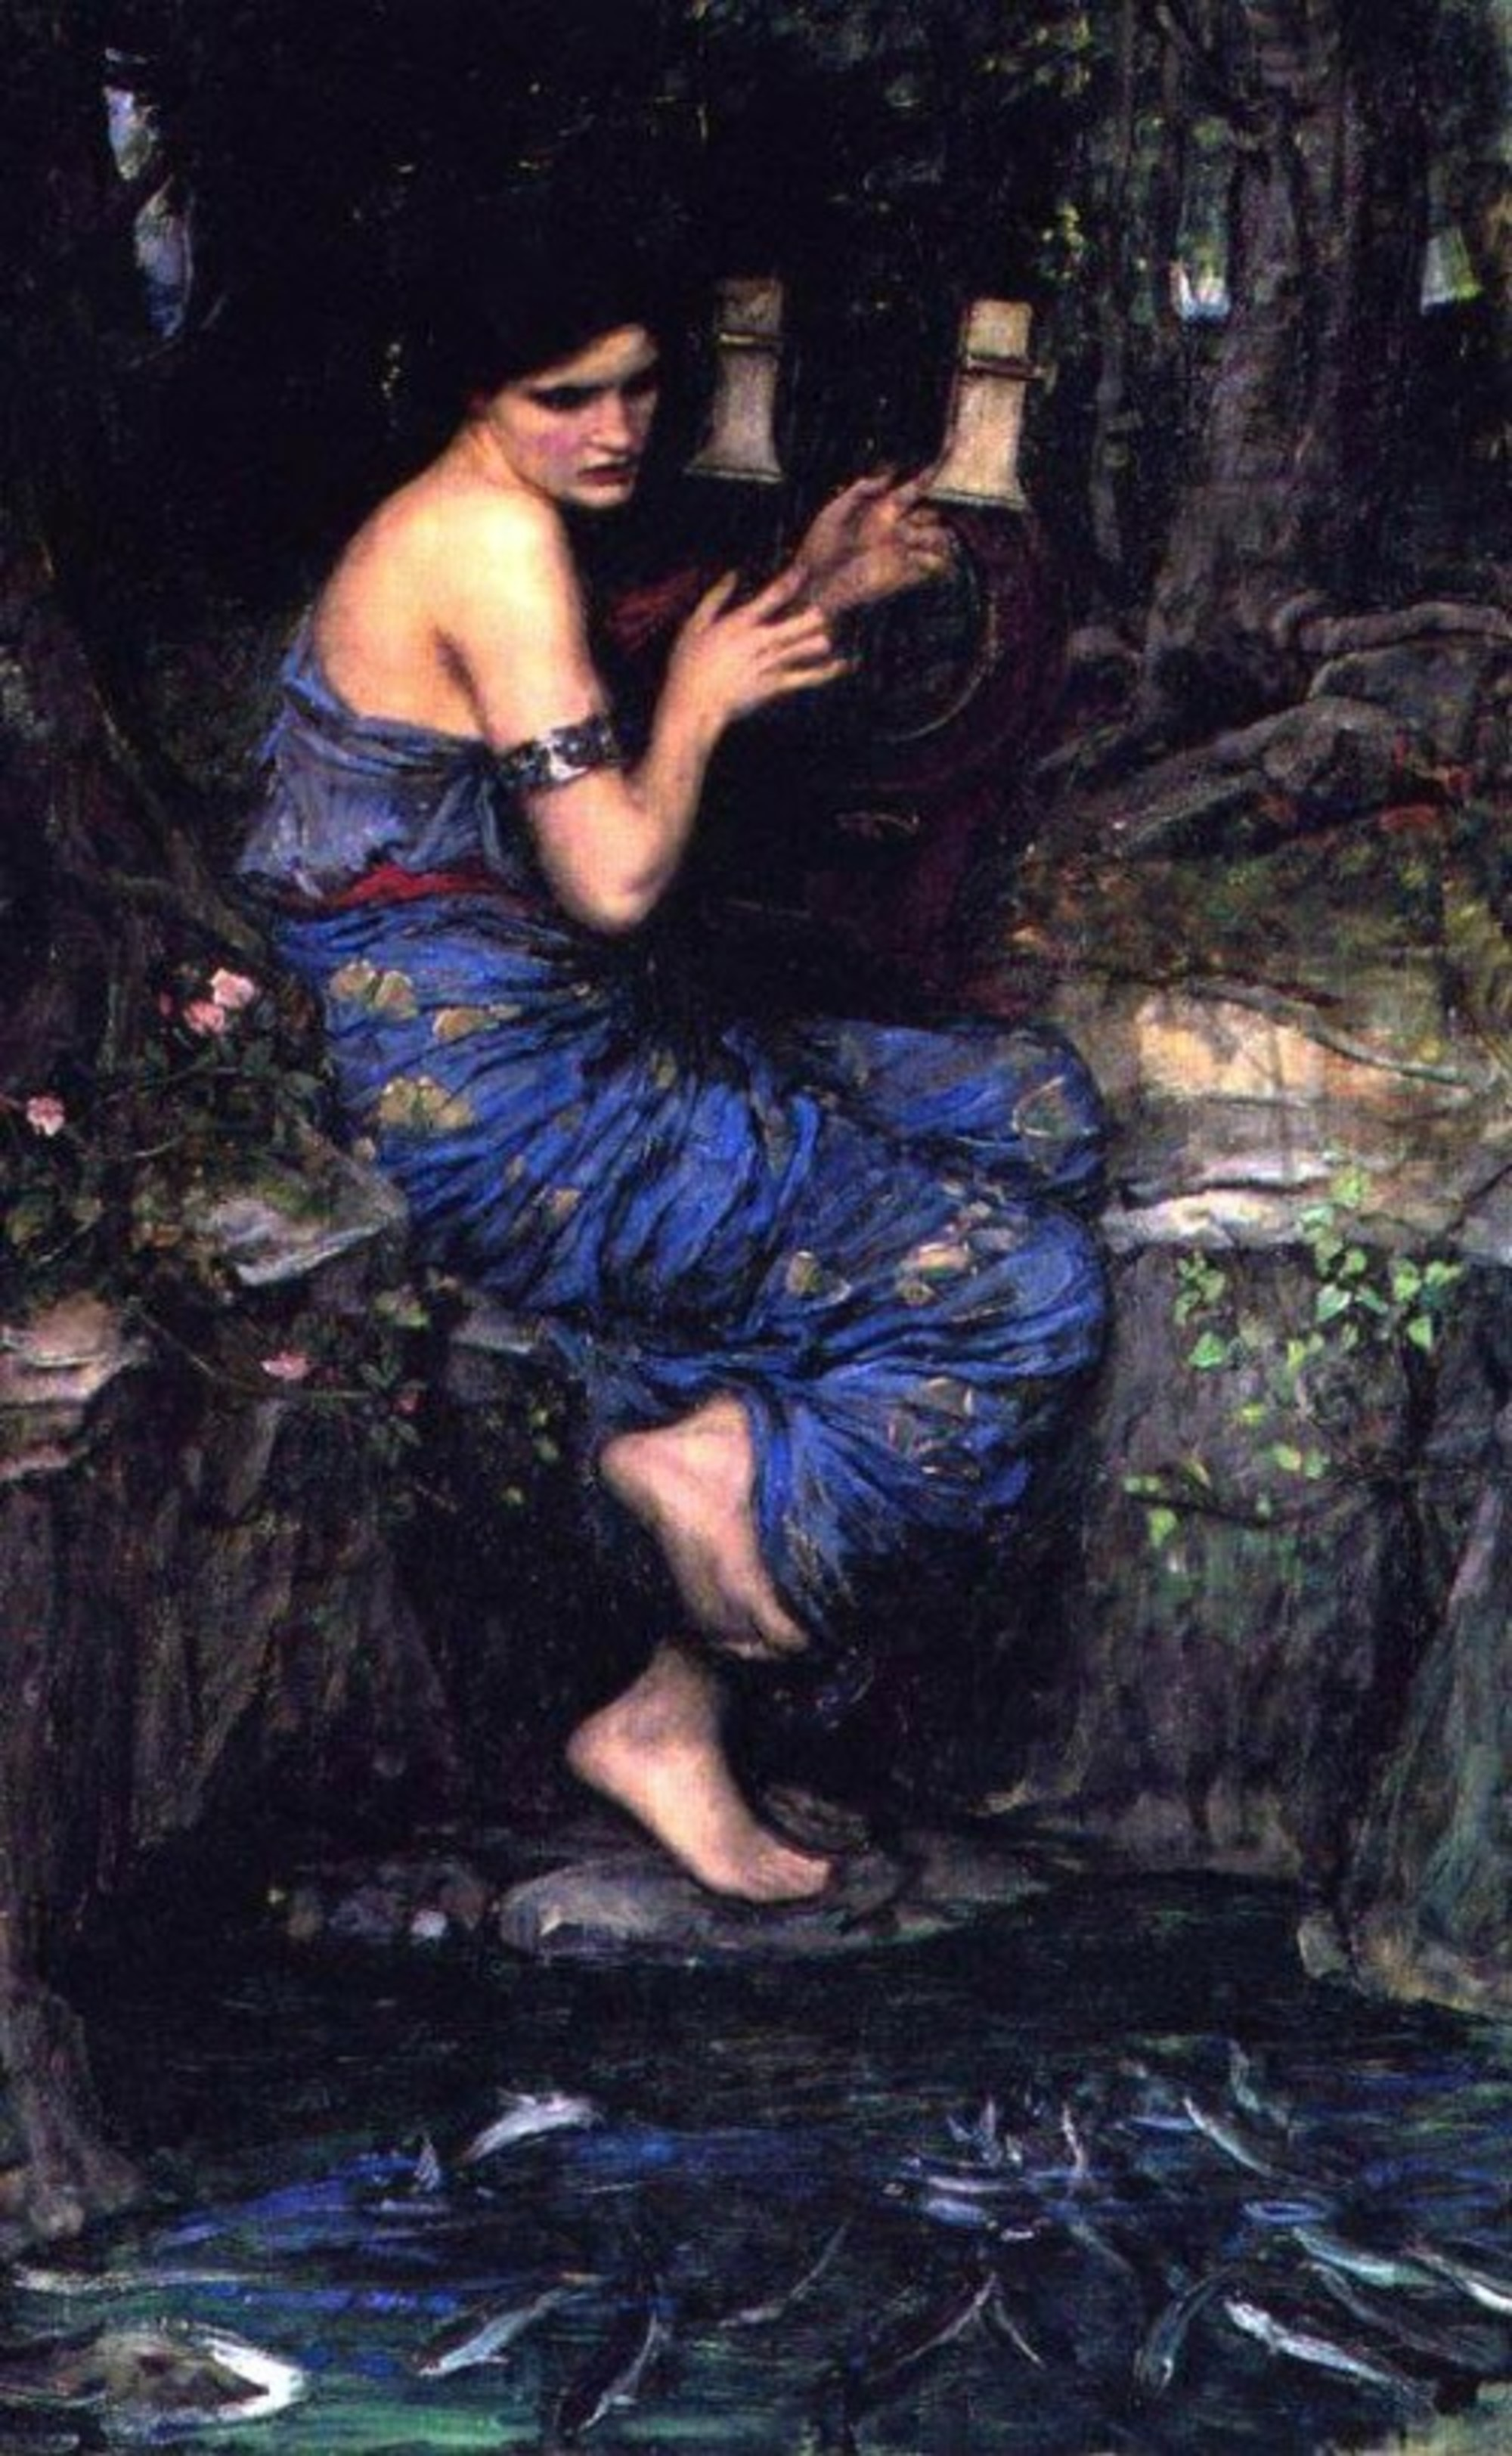 John_William_Waterhouse_-_The_Charmer.jpg